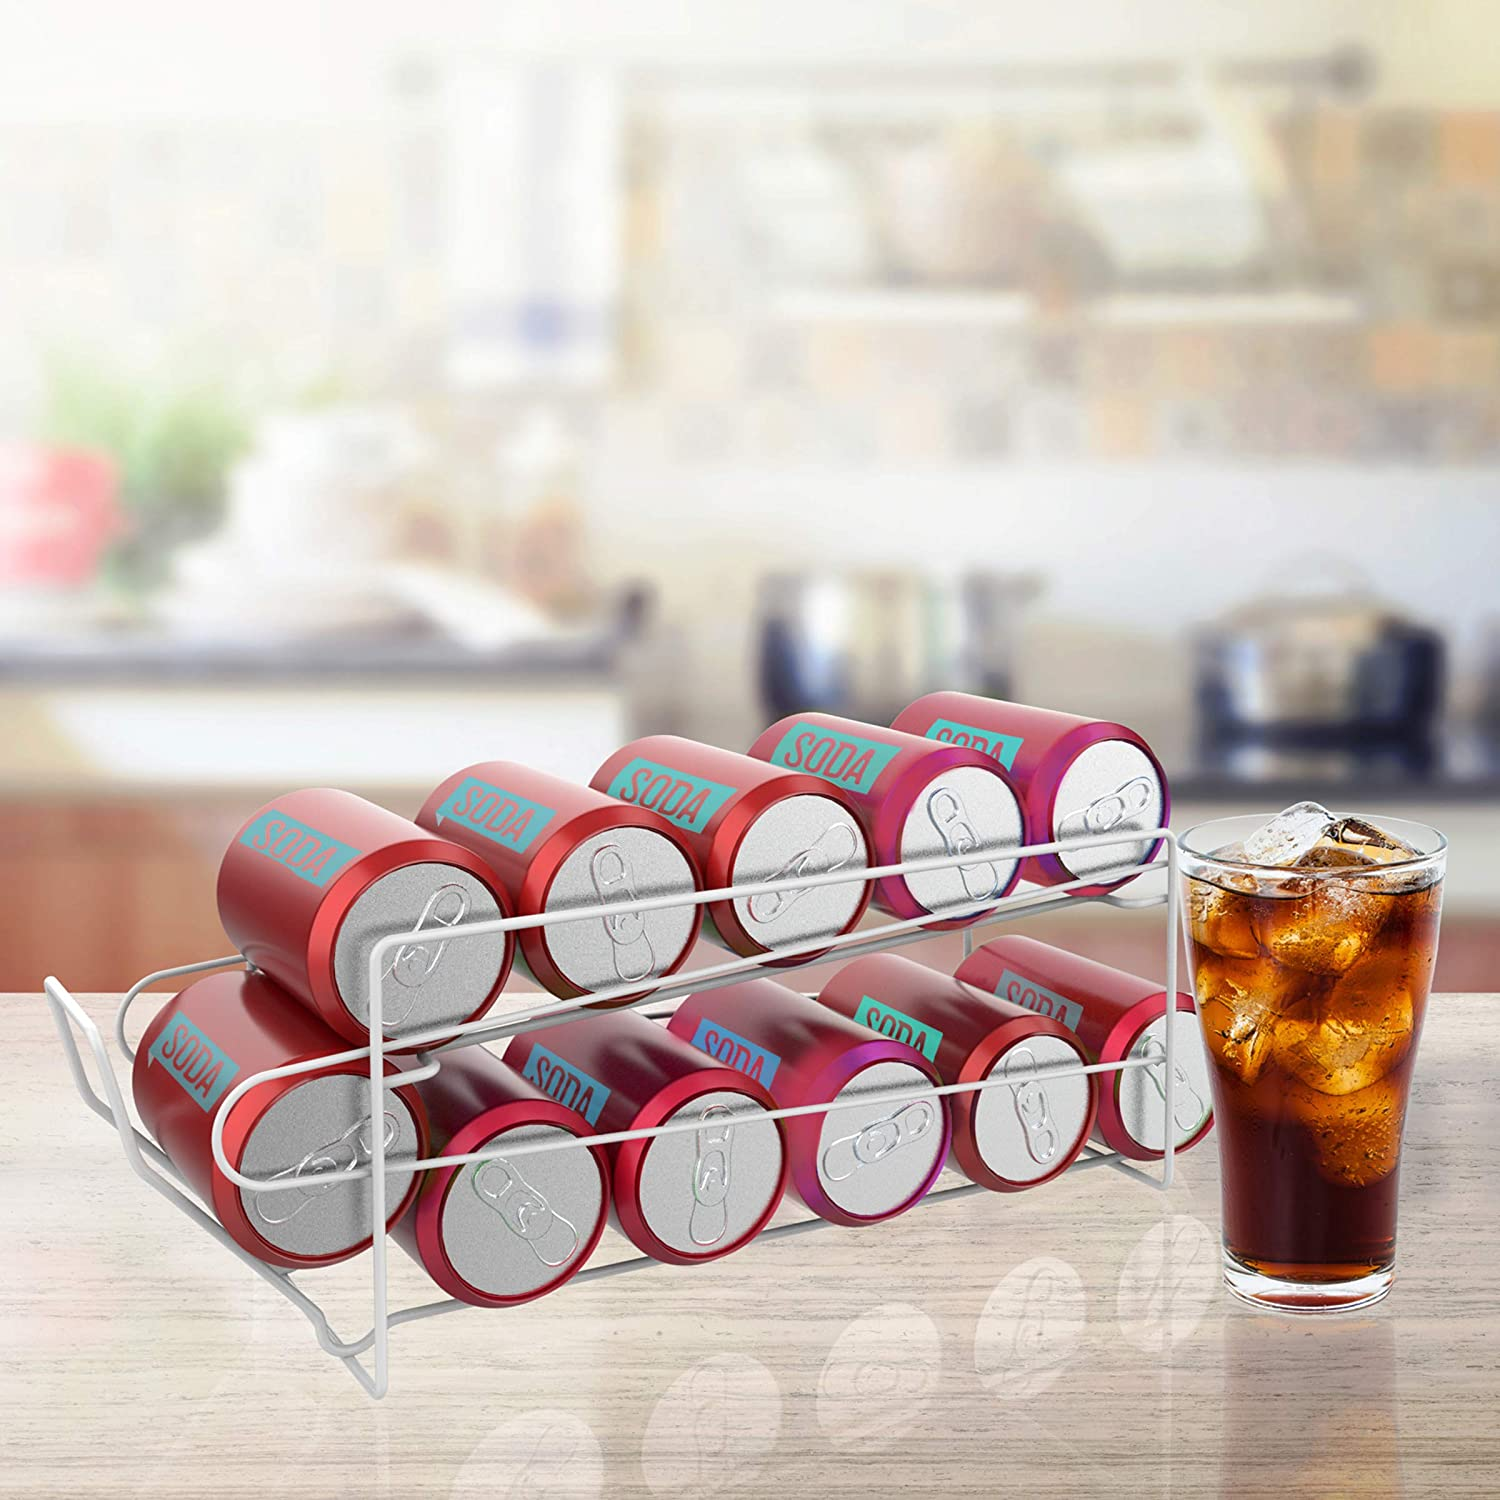 Lavish Home 2-Tier Dispenser-Organizer Holds 12 Standard Food or Soda Cans for Kitchen Pantry, Countertops, Cabinets, Fridge-Storage Rack